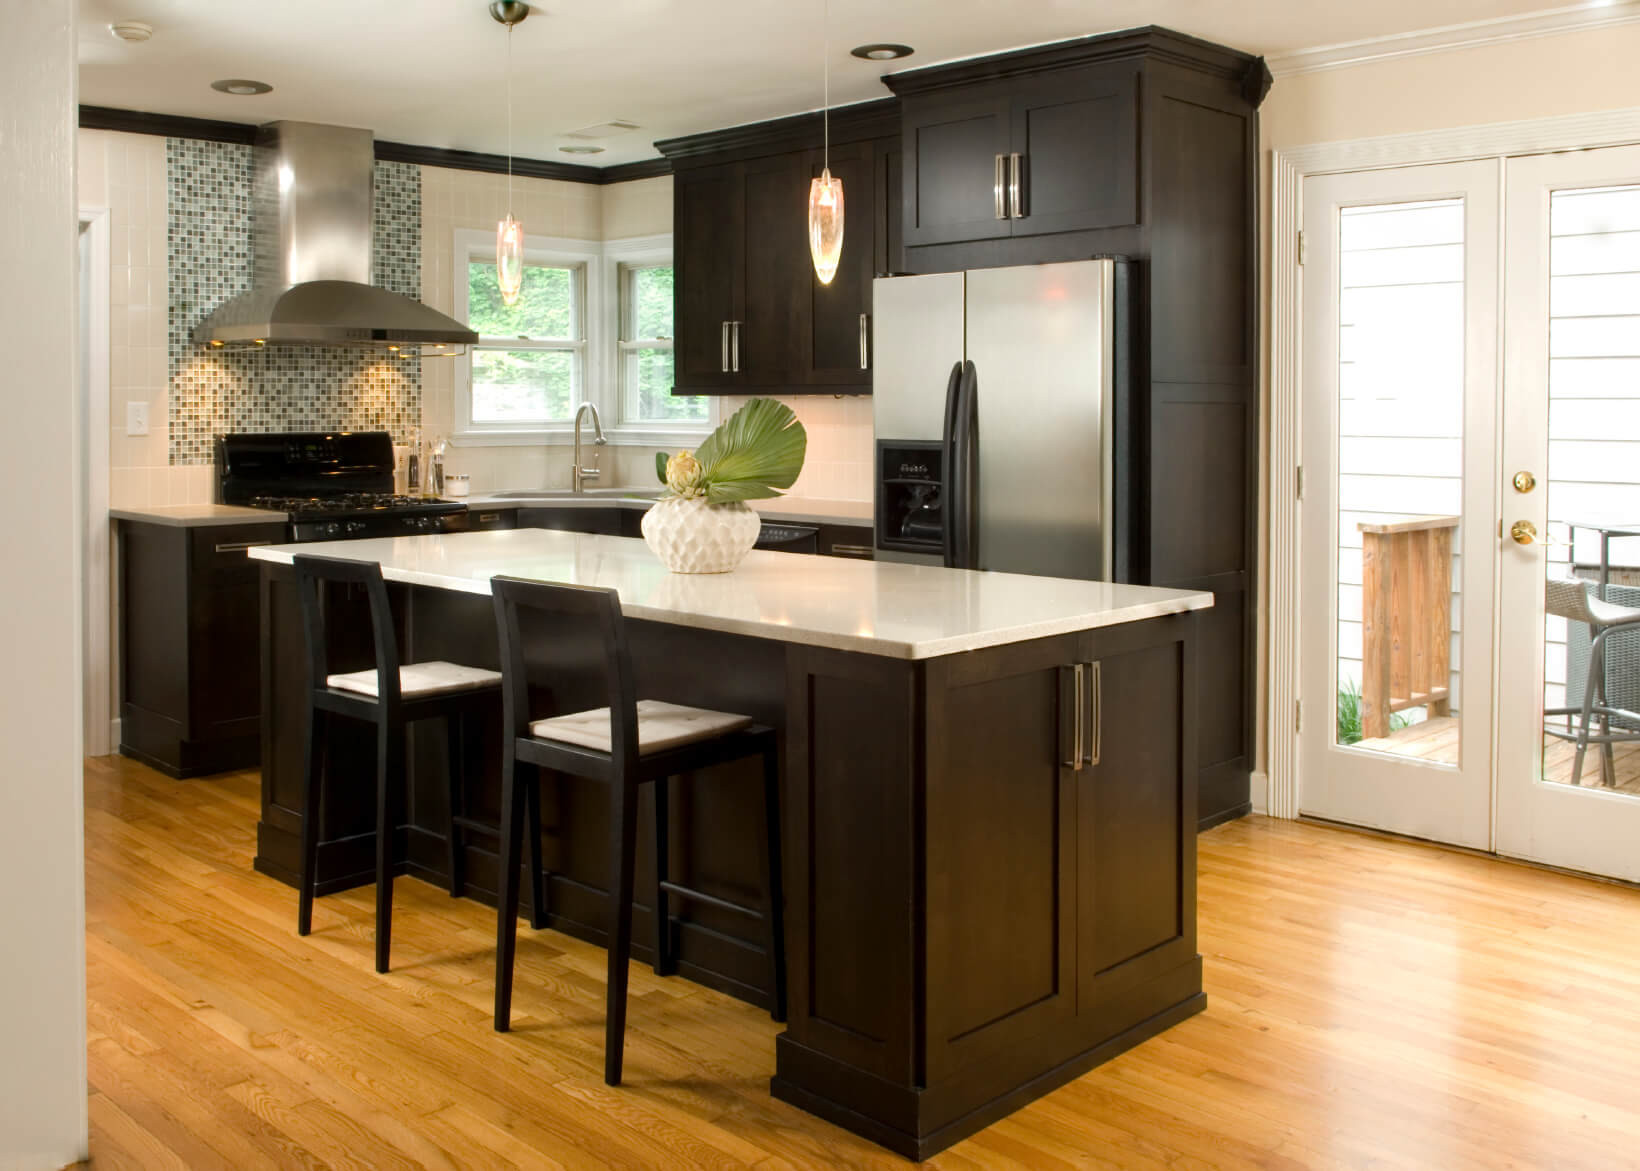 Best ideas about Kitchen Ideas With Dark Cabinets . Save or Pin 52 Dark Kitchens with Dark Wood and Black Kitchen Cabinets Now.